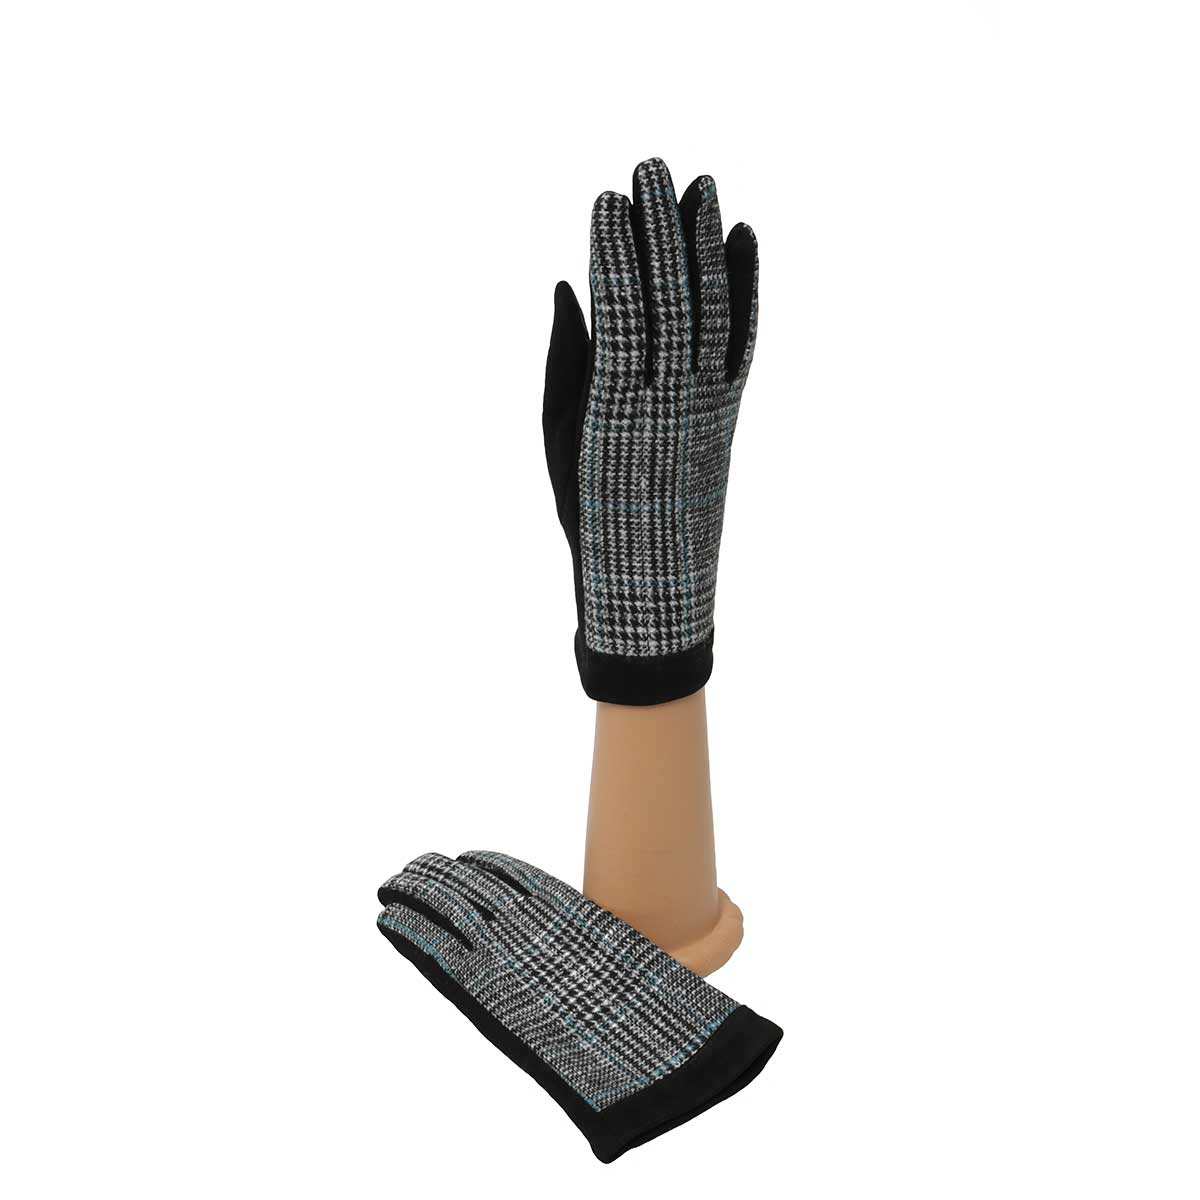 Black and Teal Plaid Gloves with Black Palm